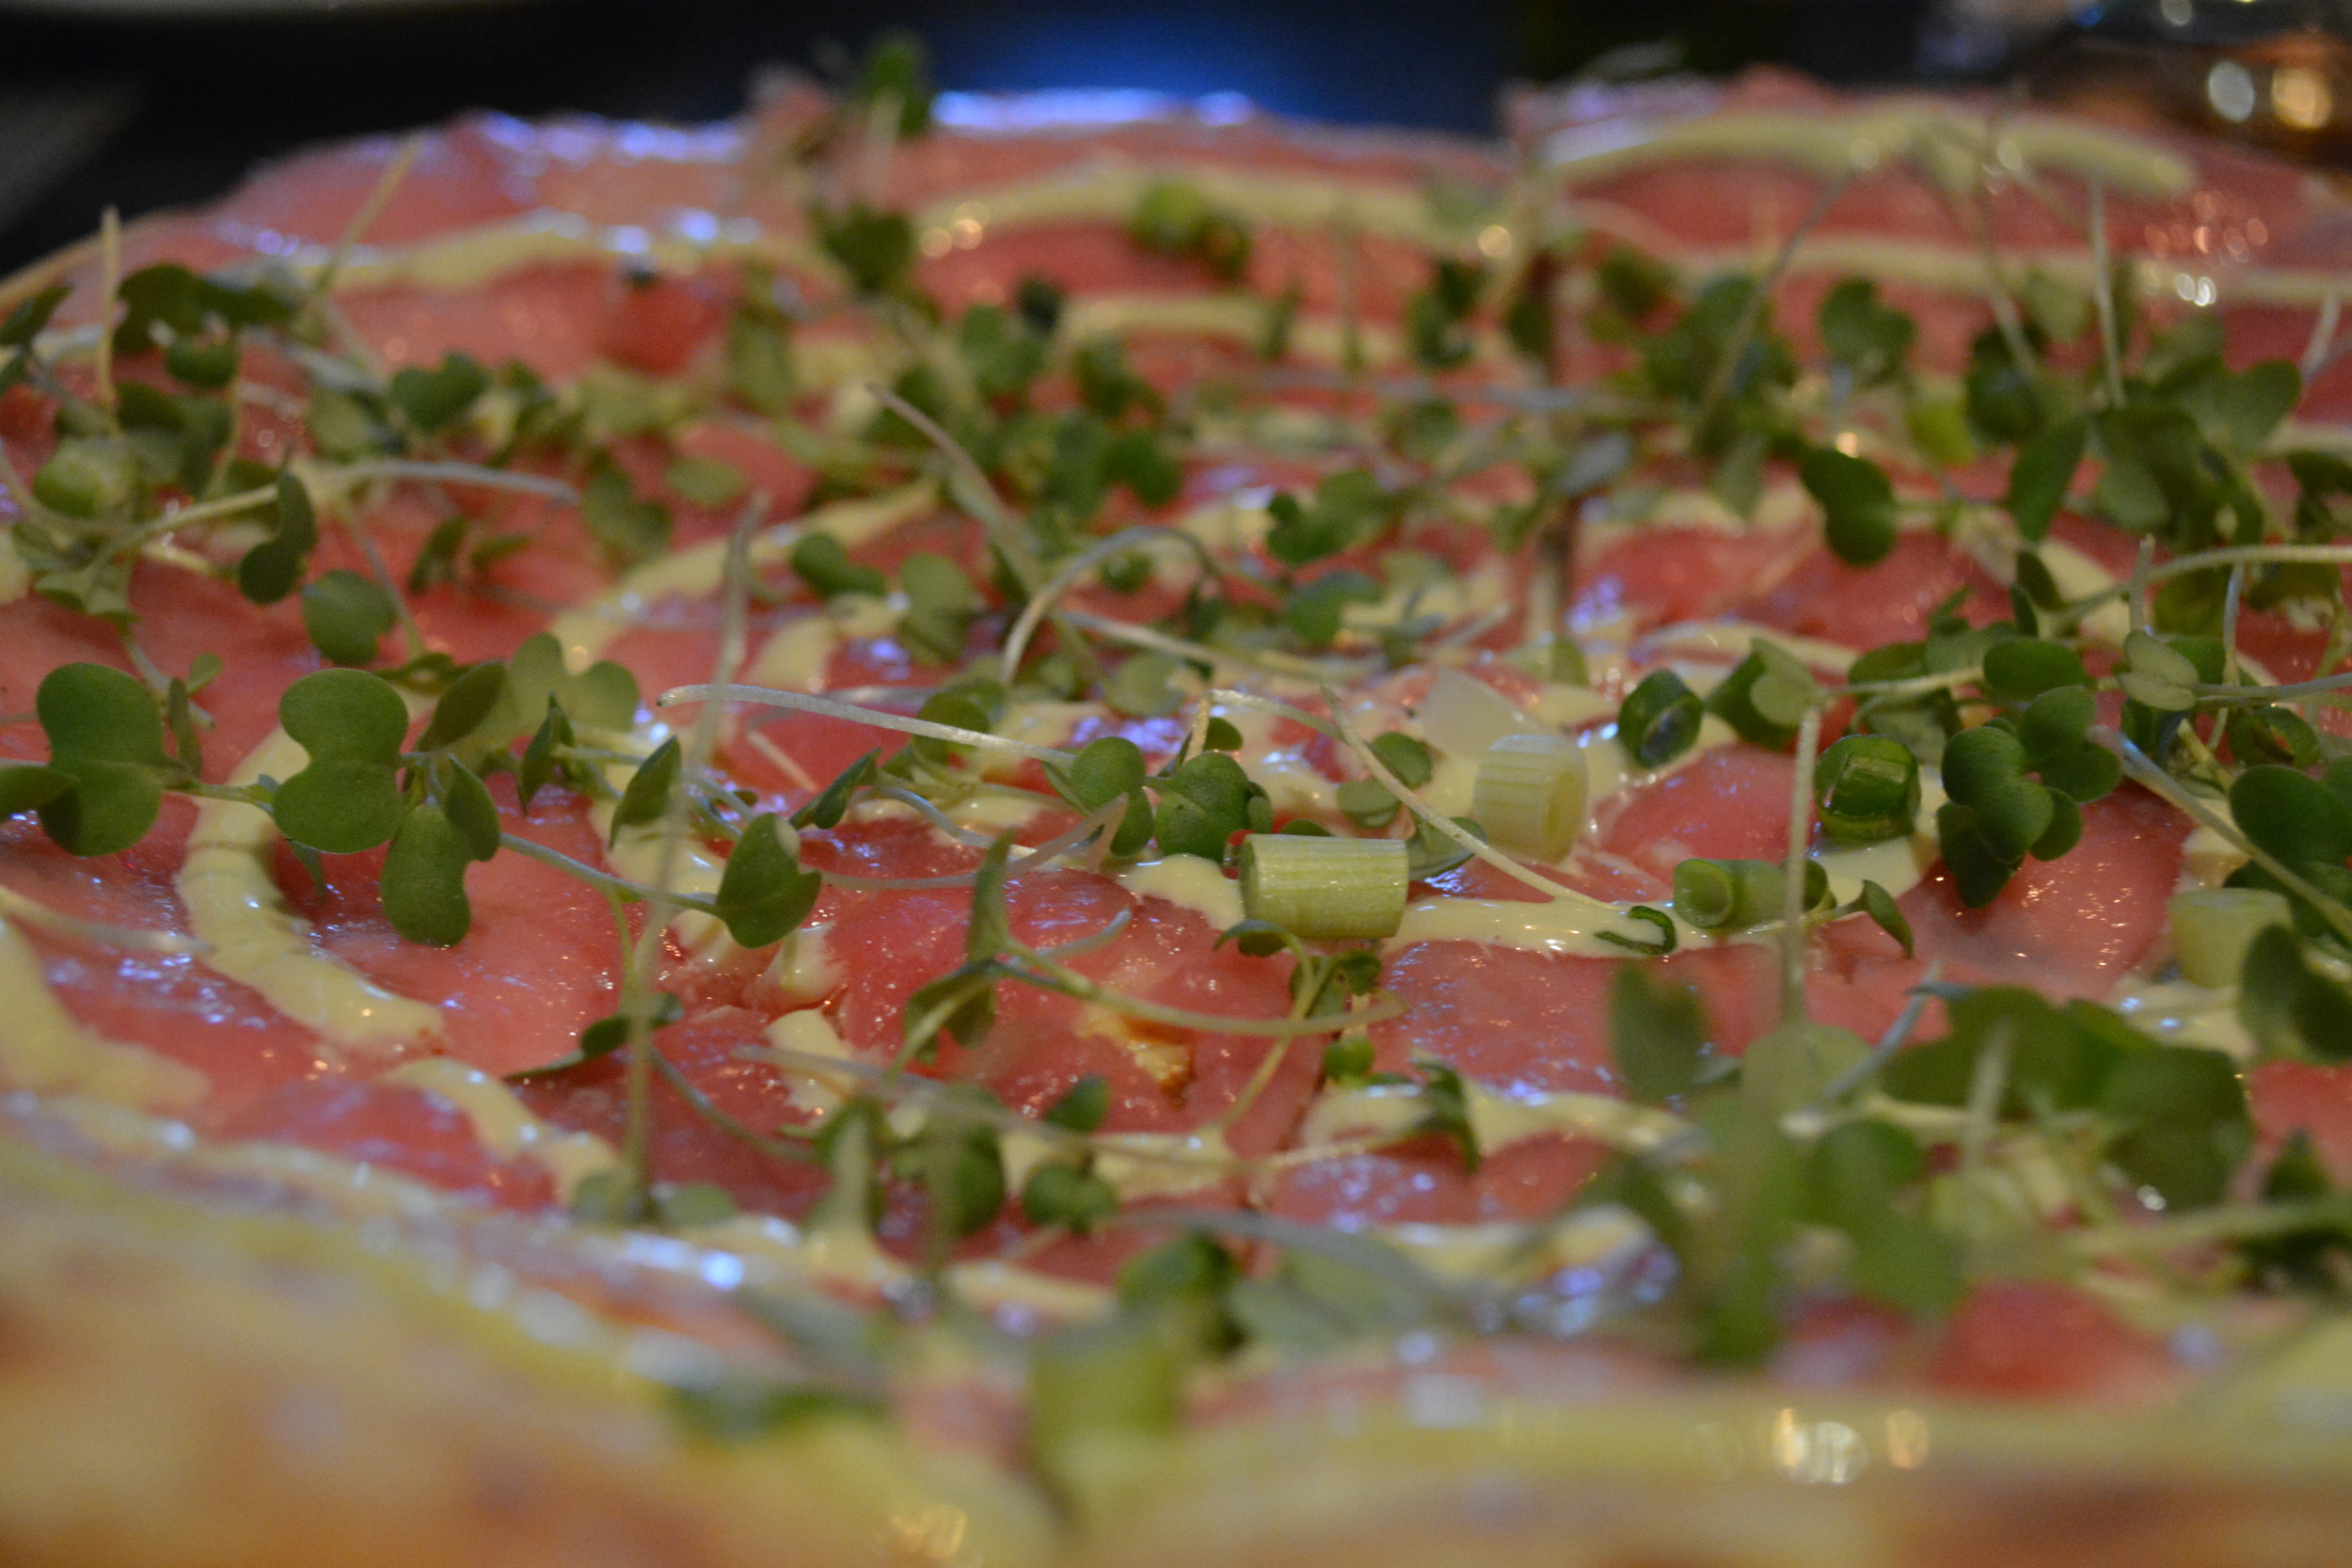 The Raw Tuna Pizza tasted fresh and flavorful.